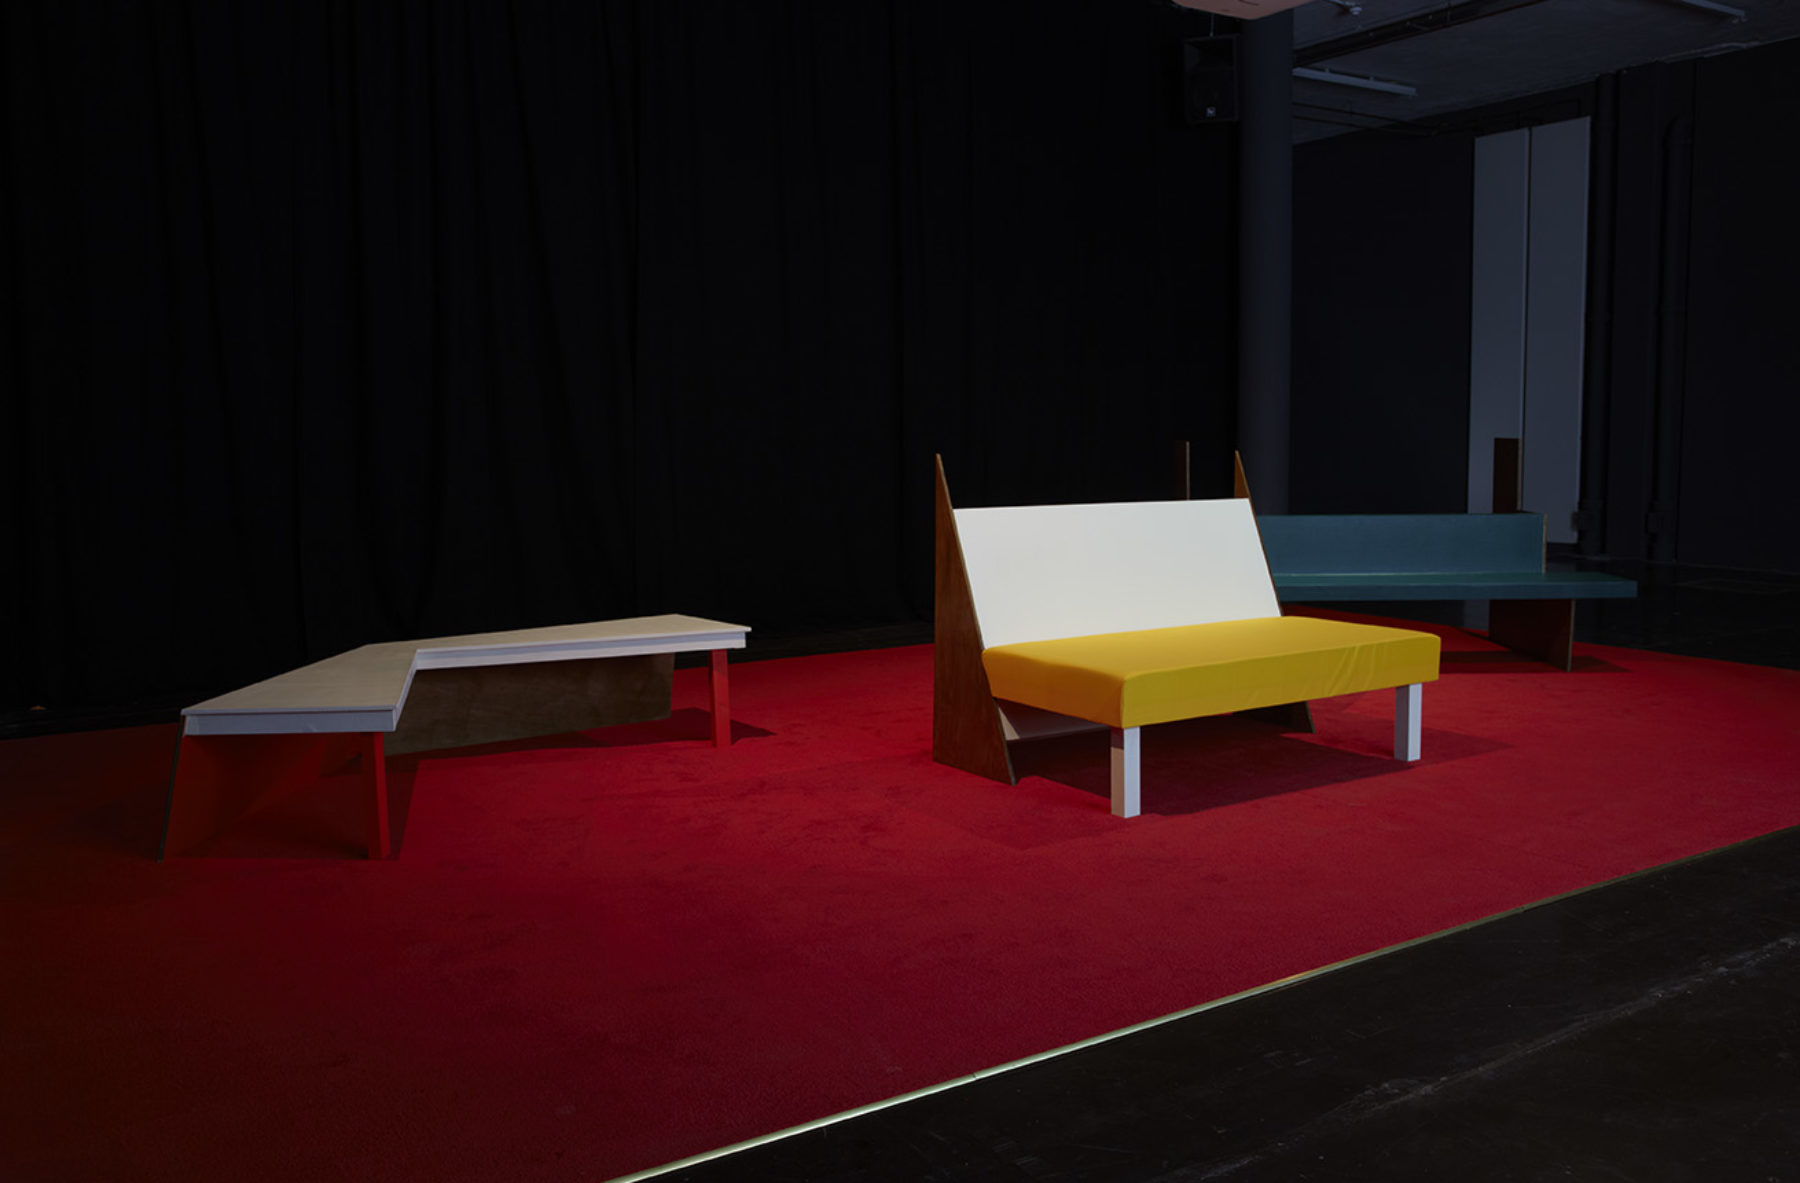 Installation view of Cara Tolmie, Pley (2013). Angular colourful furniture sits spotlighted in a dark room.